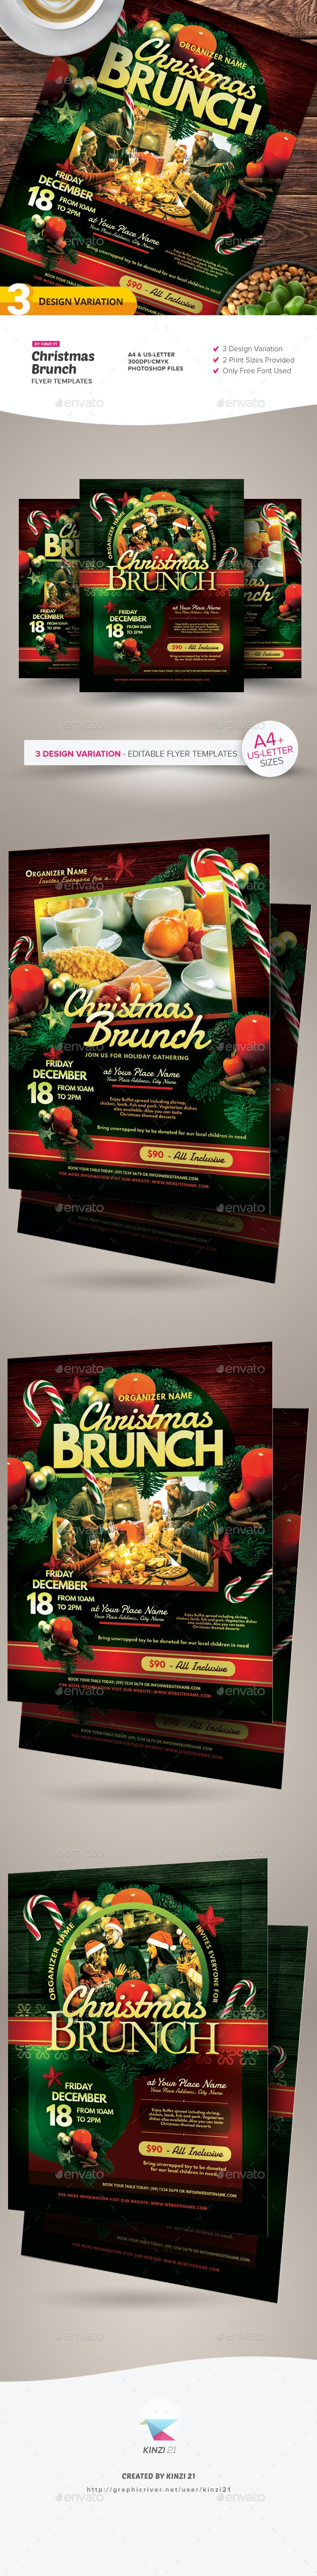 Christmas Brunch Flyer Templates - Holidays Events